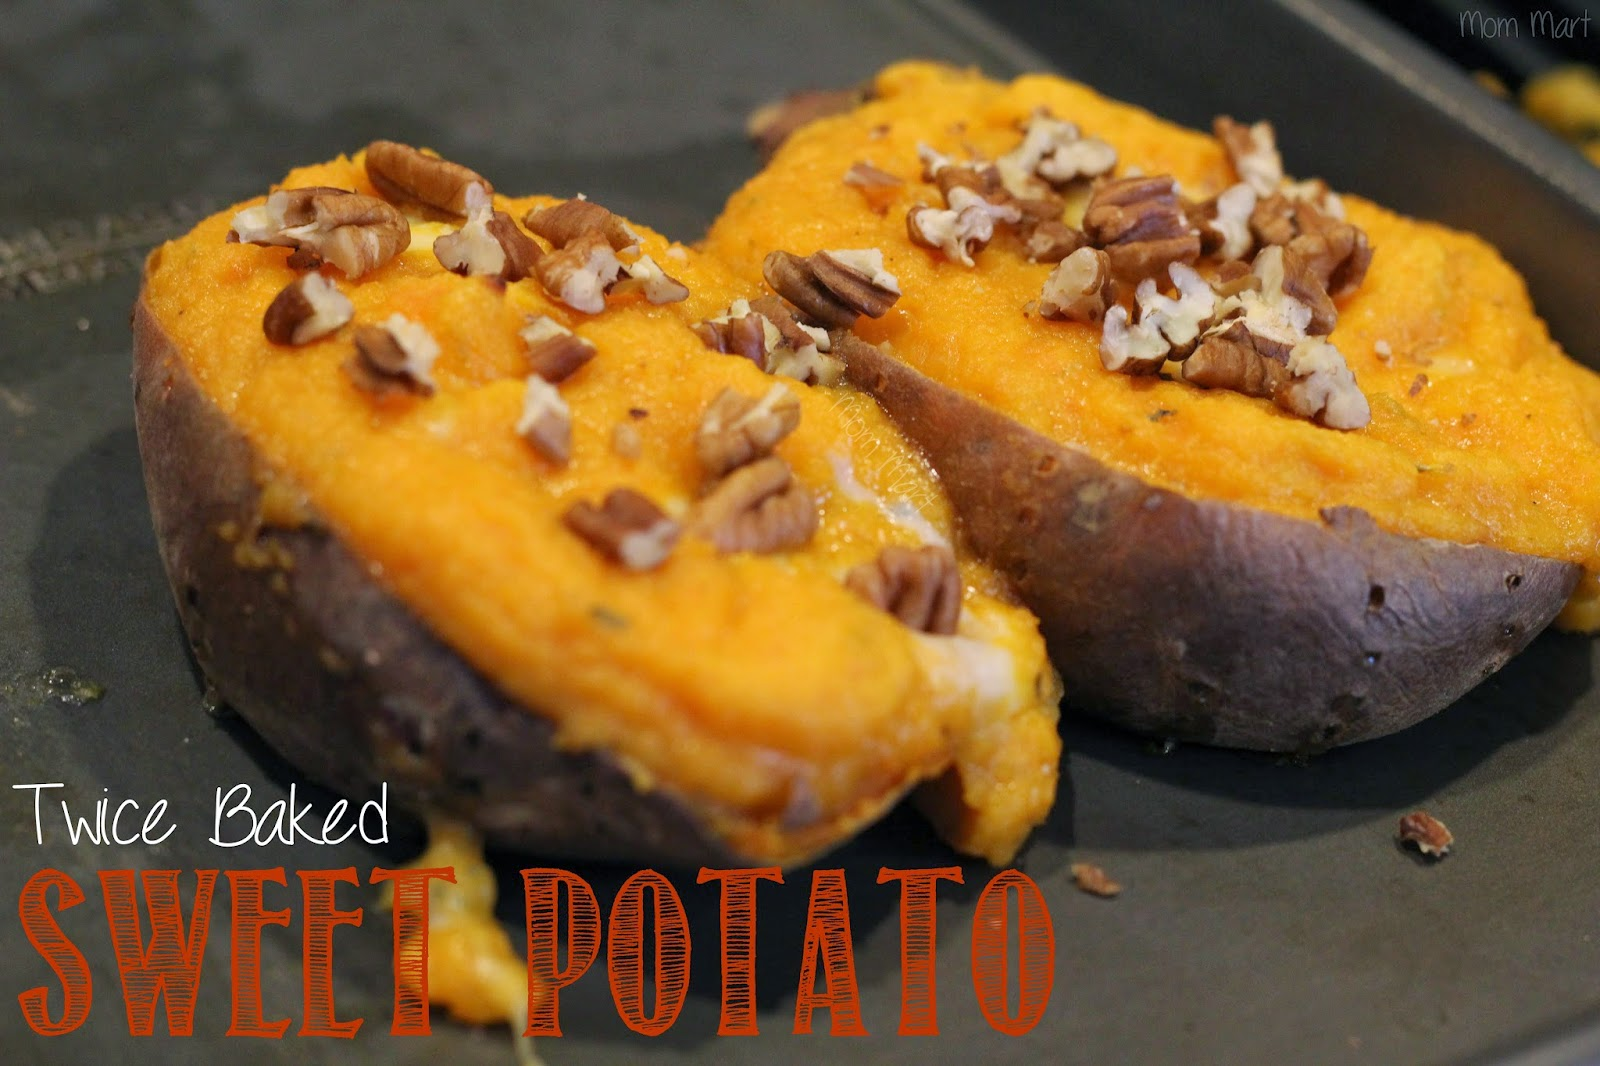 Twice Baked Sweet Potatoes  #Recipe #Tutorial #Foodie #YUM